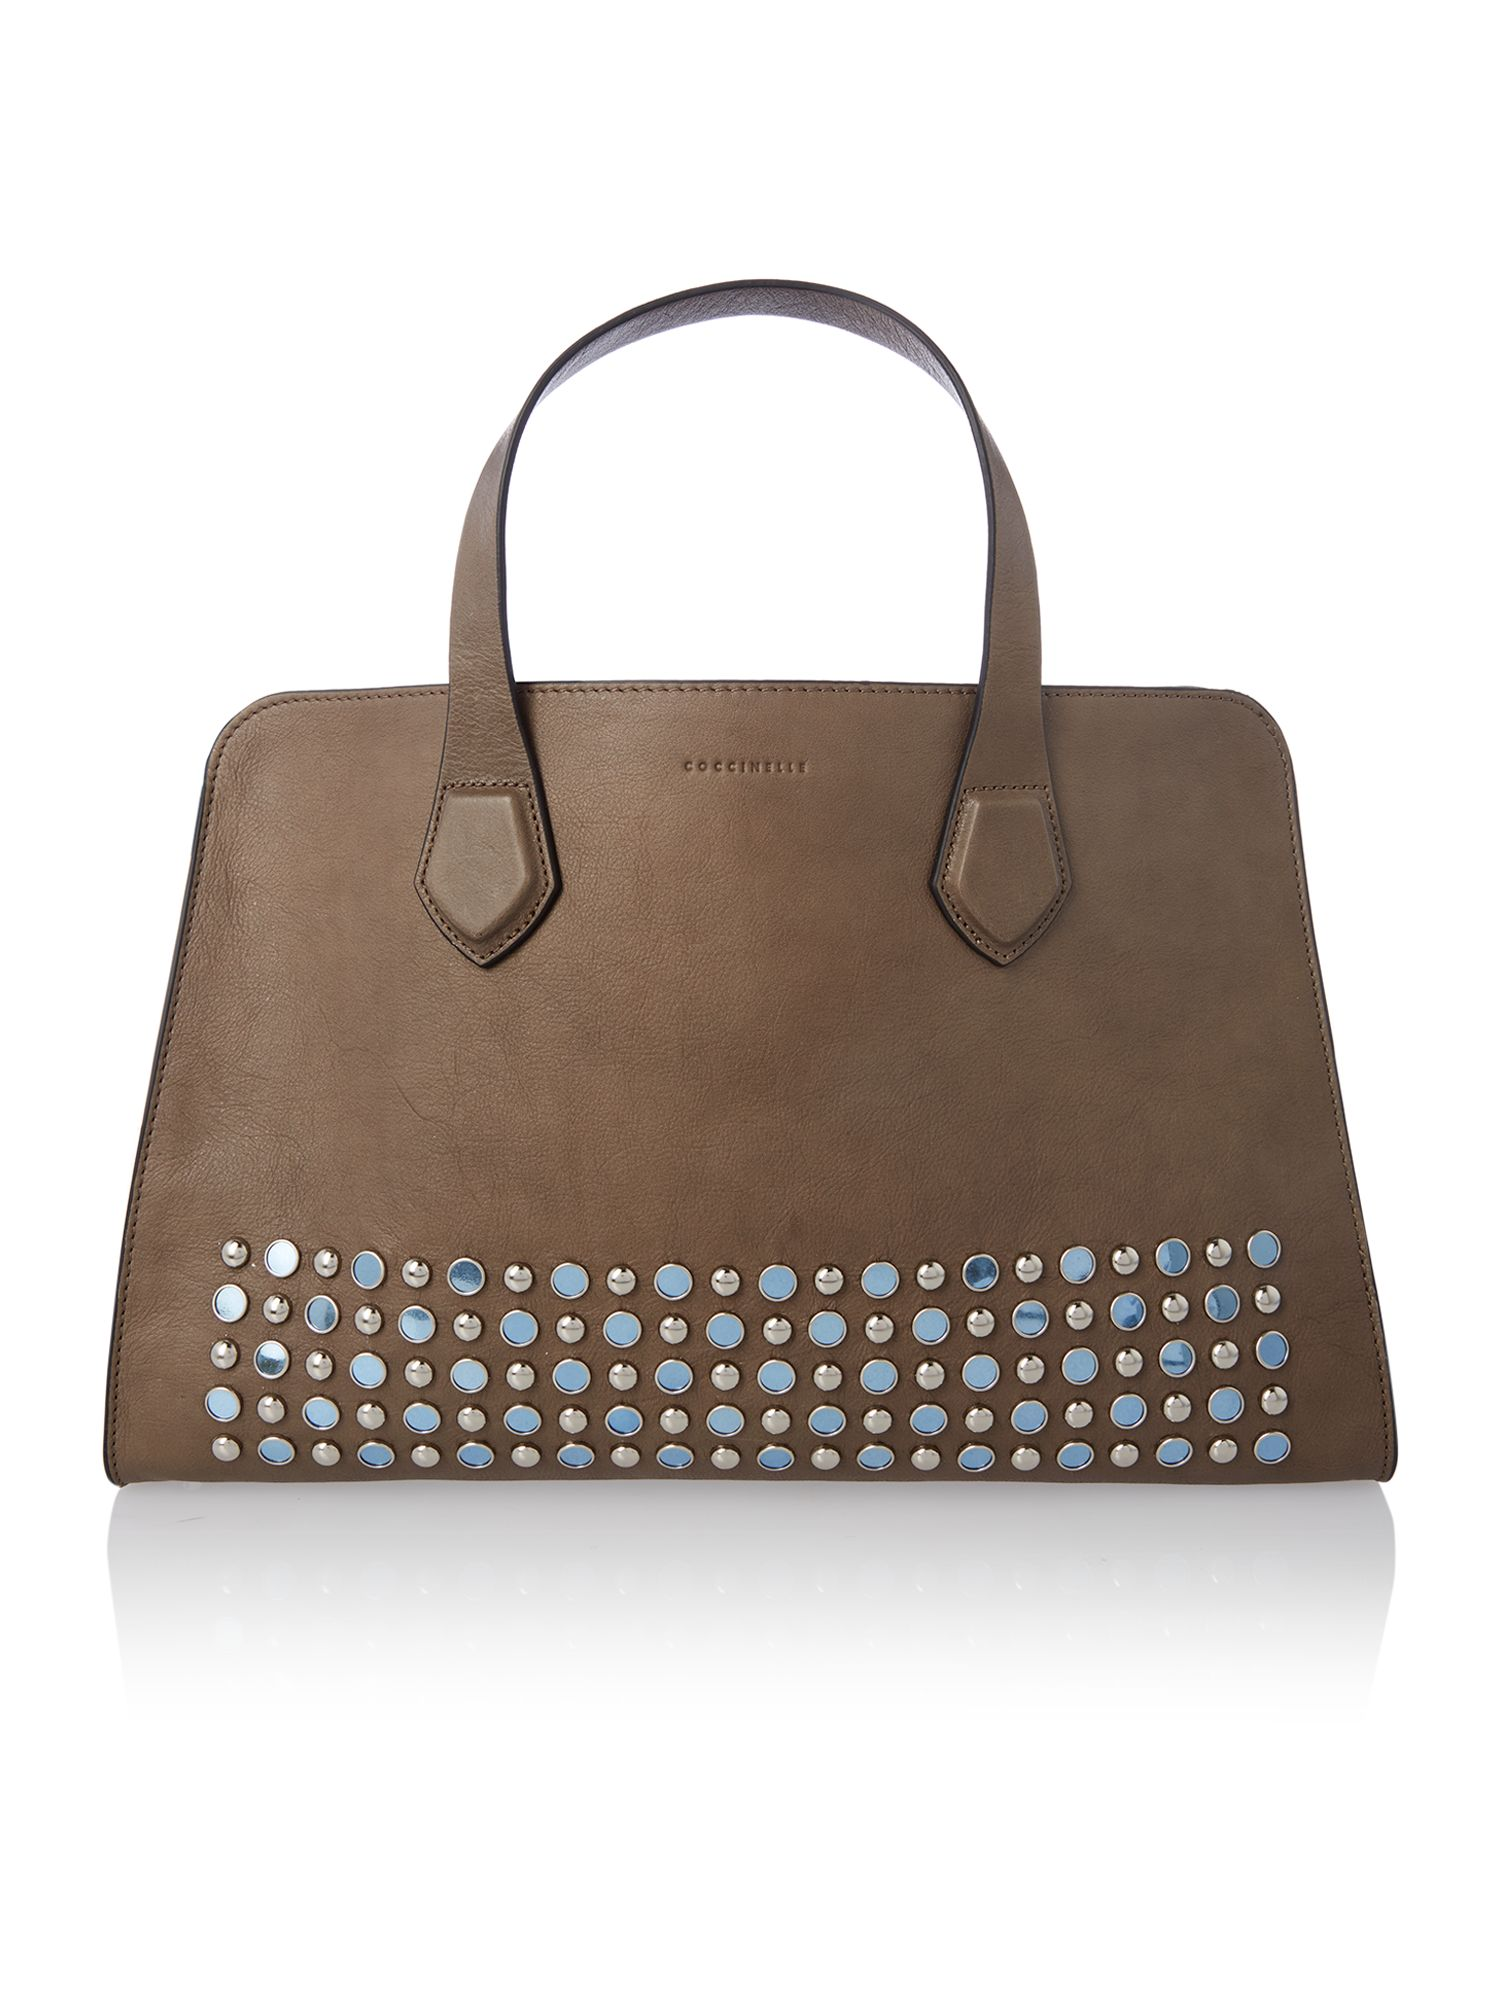 Moon taupe large tote bag with studs